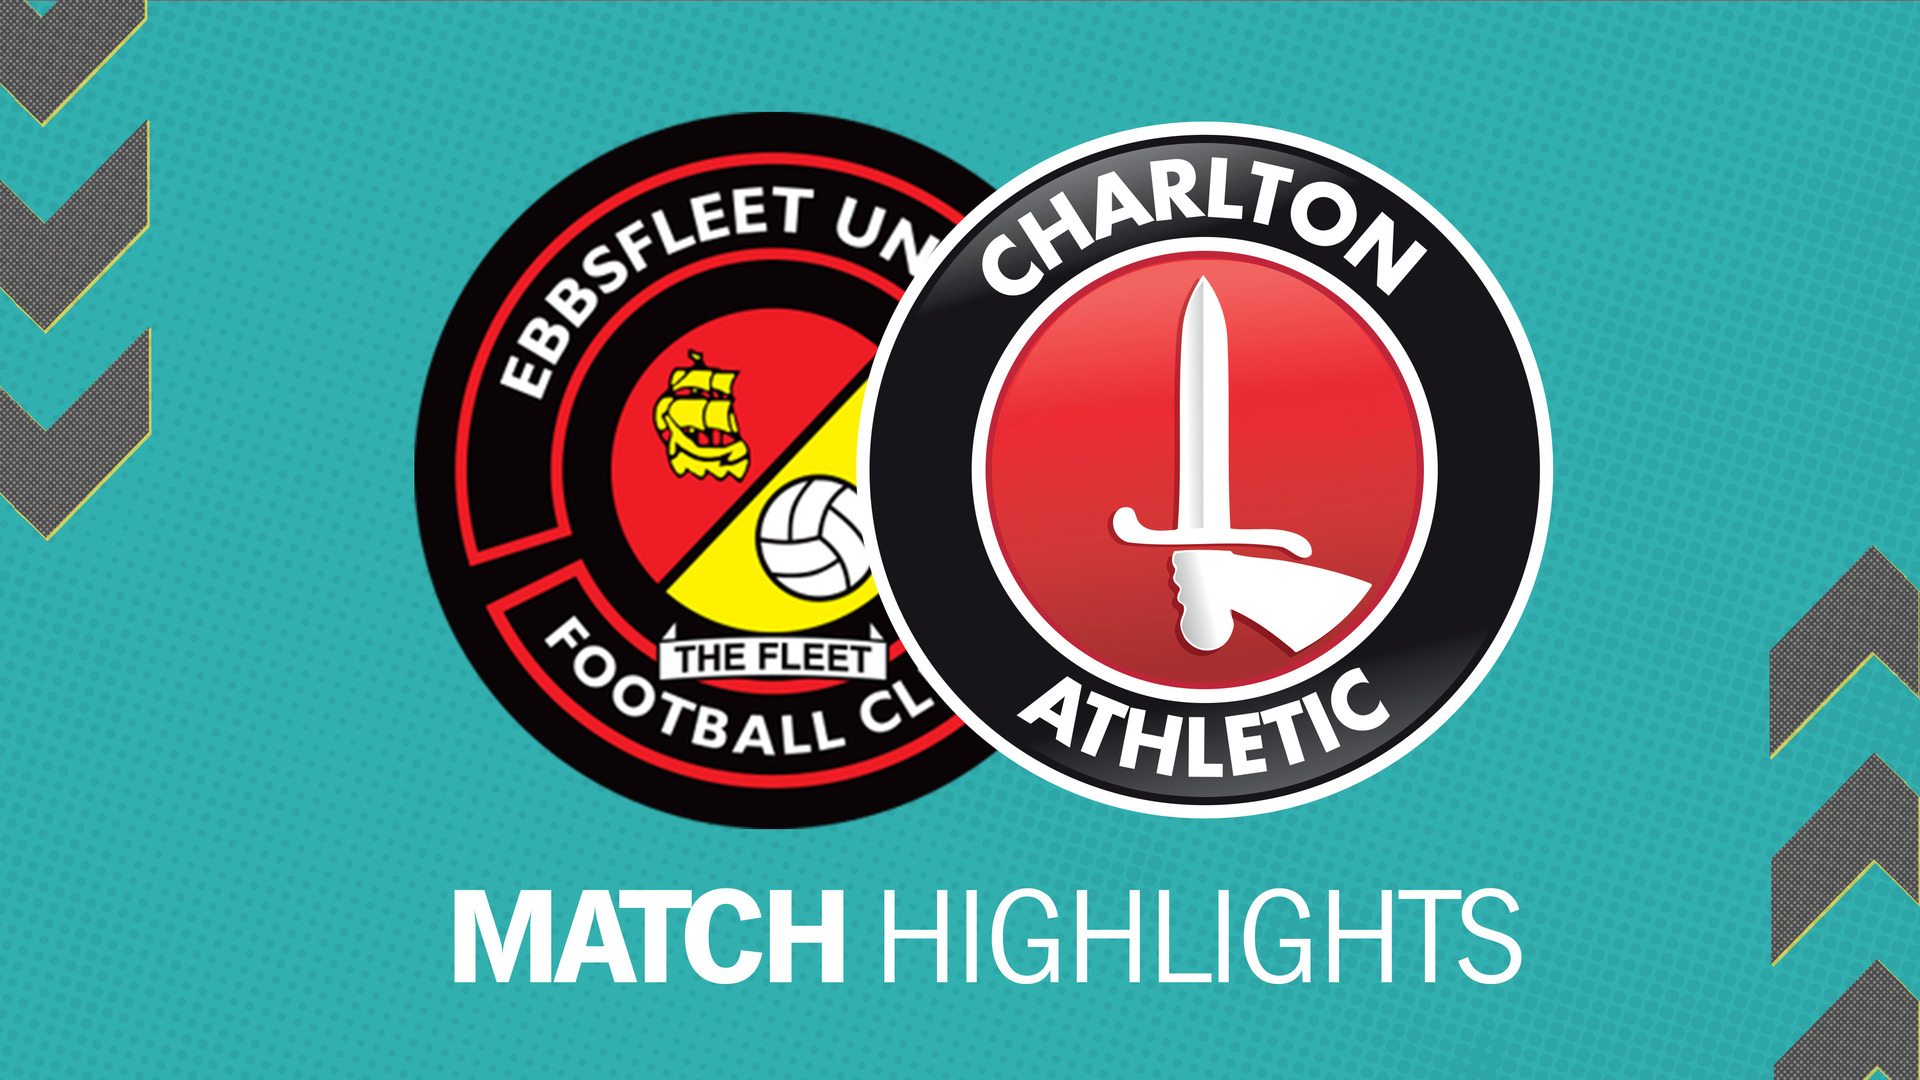 HIGHLIGHTS | Ebbsfleet United 2 Charlton 1 (July 2019)